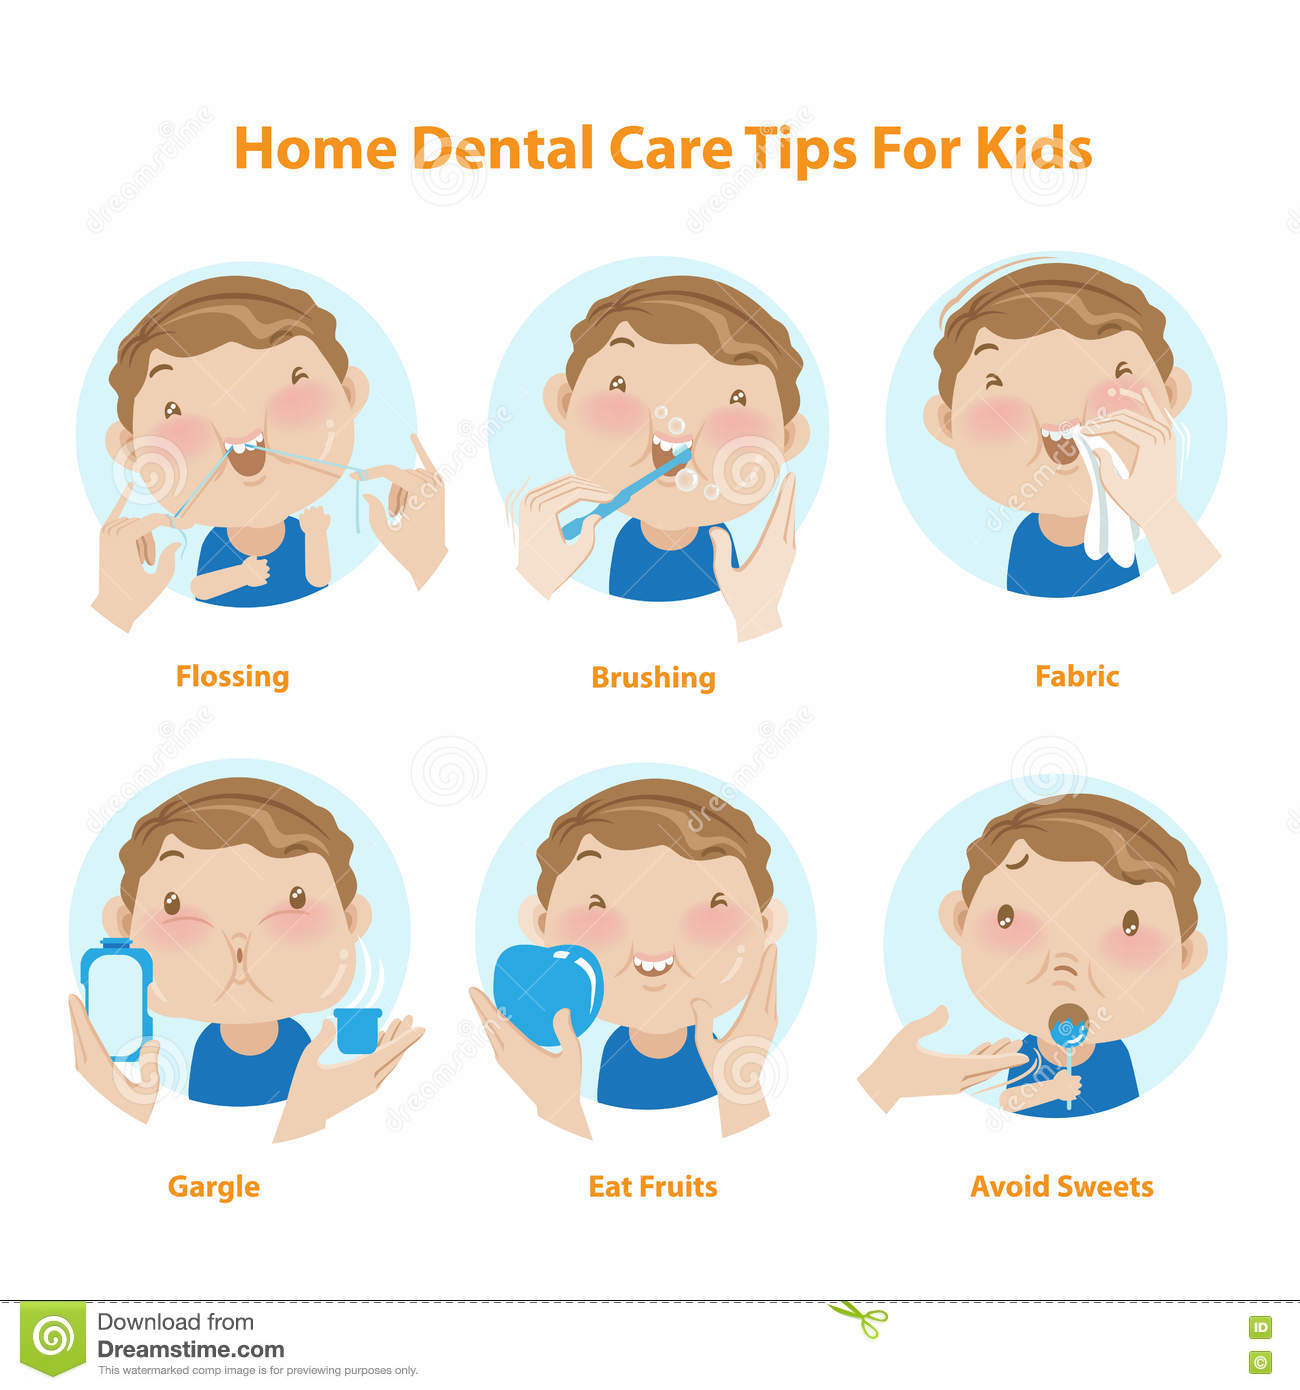 dental-kids-care-illustrations-72968592.jpg